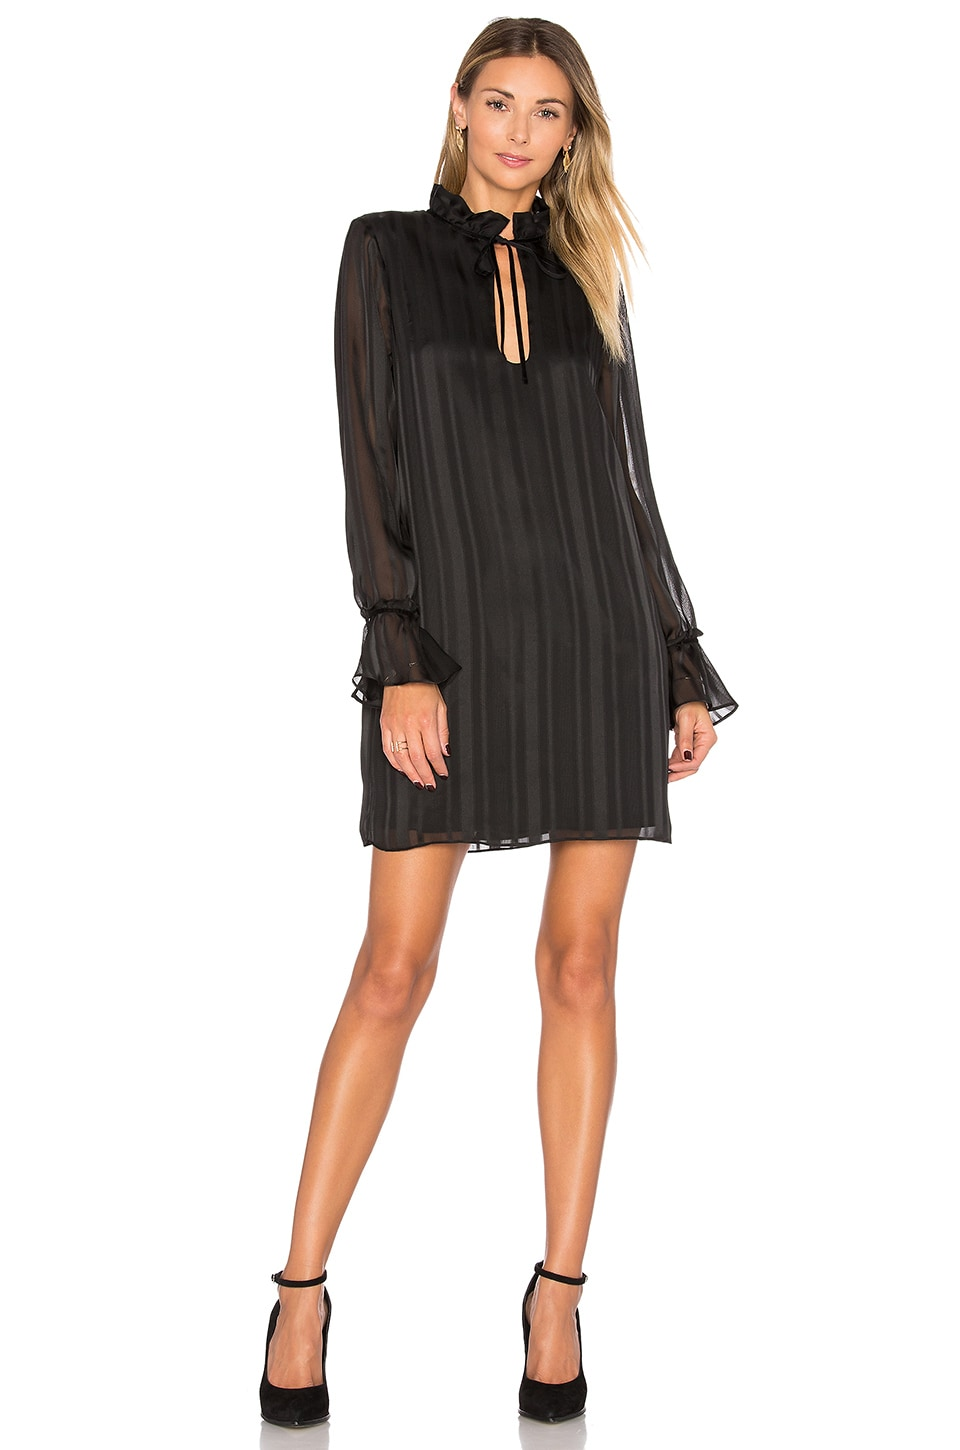 The 70s Ruffle Sleeve Dress